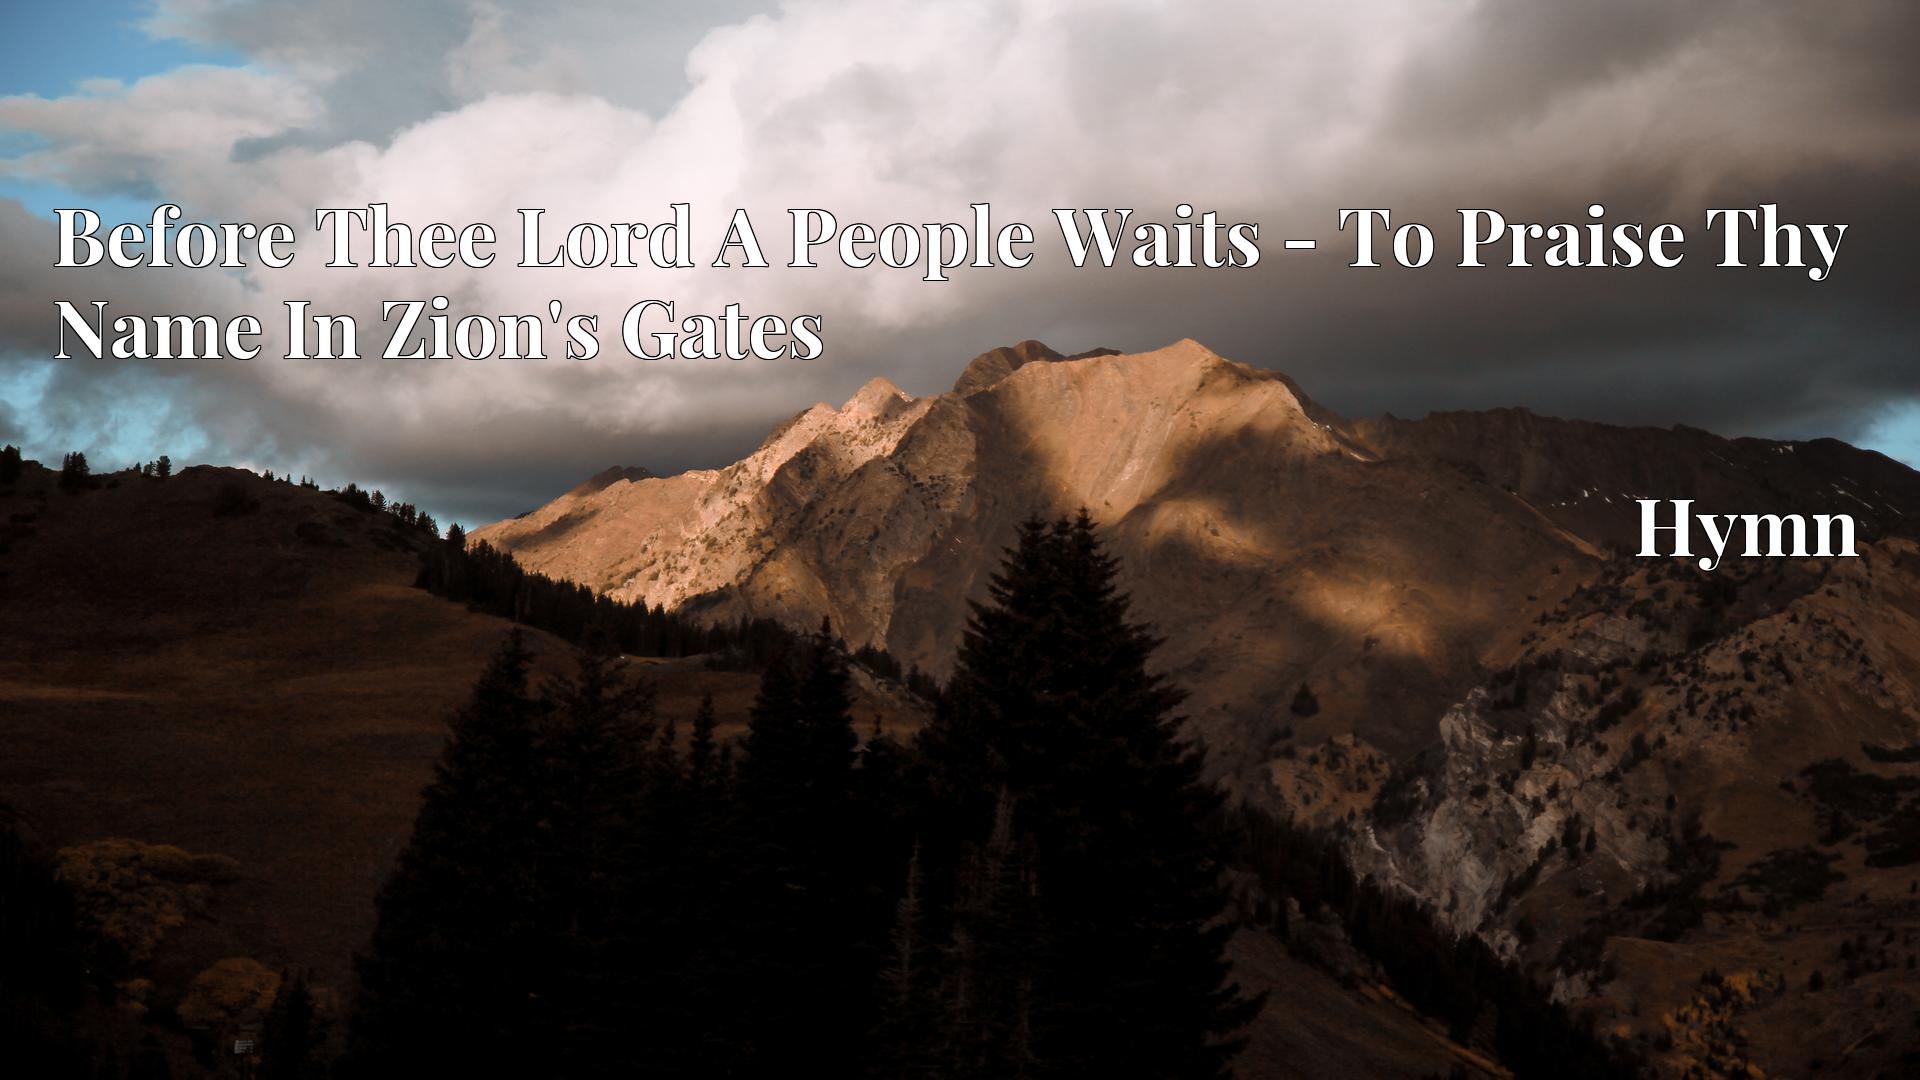 Before Thee Lord A People Waits - To Praise Thy Name In Zion's Gates - Hymn